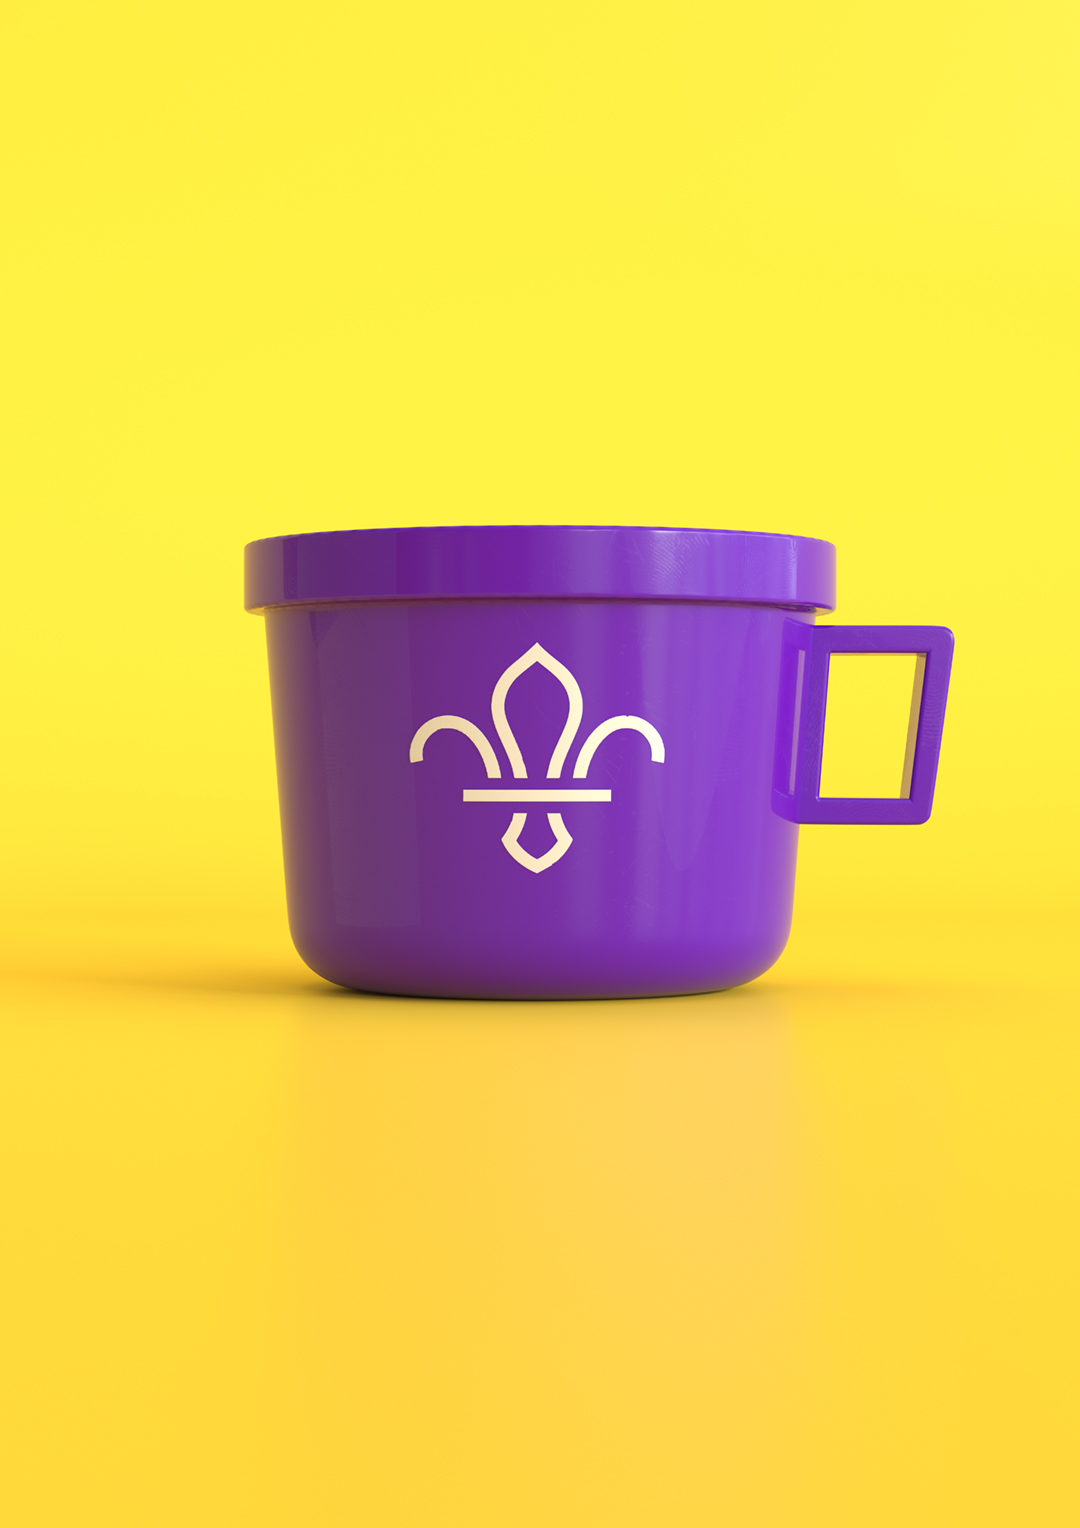 Scouts - Better Futures---Young-Illustration-&-Animation-Studio-Manchester-2D,3D,hot chocolate, marshmellows, flask, cup 3d modelling - ANIMATION.jpg